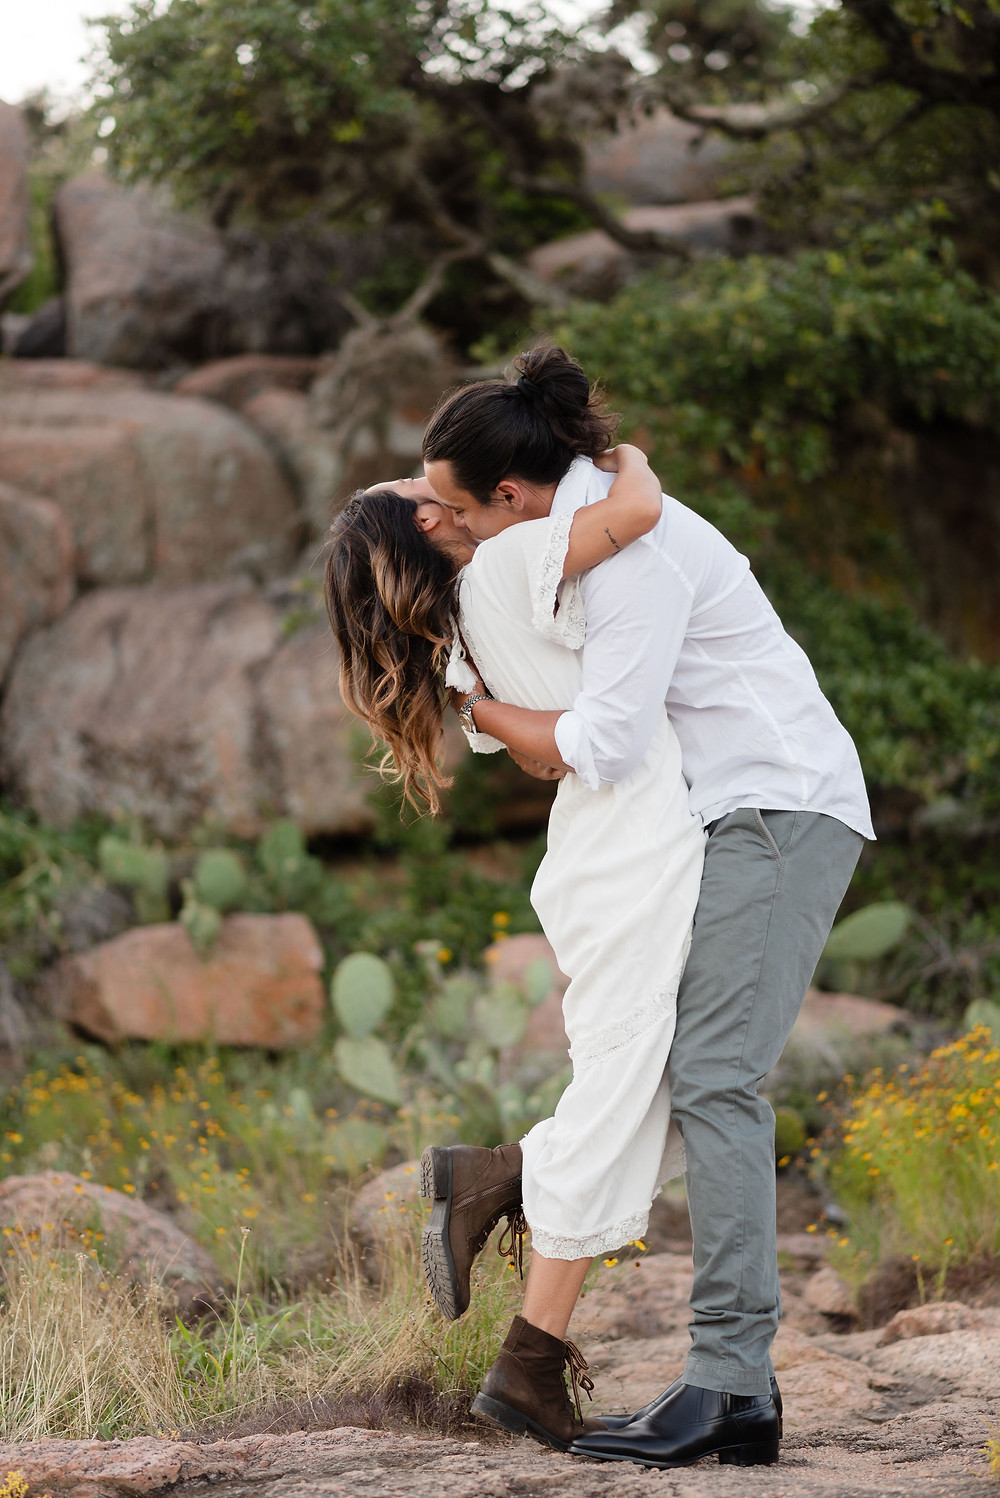 guy holding girl in his arms kissing her neck